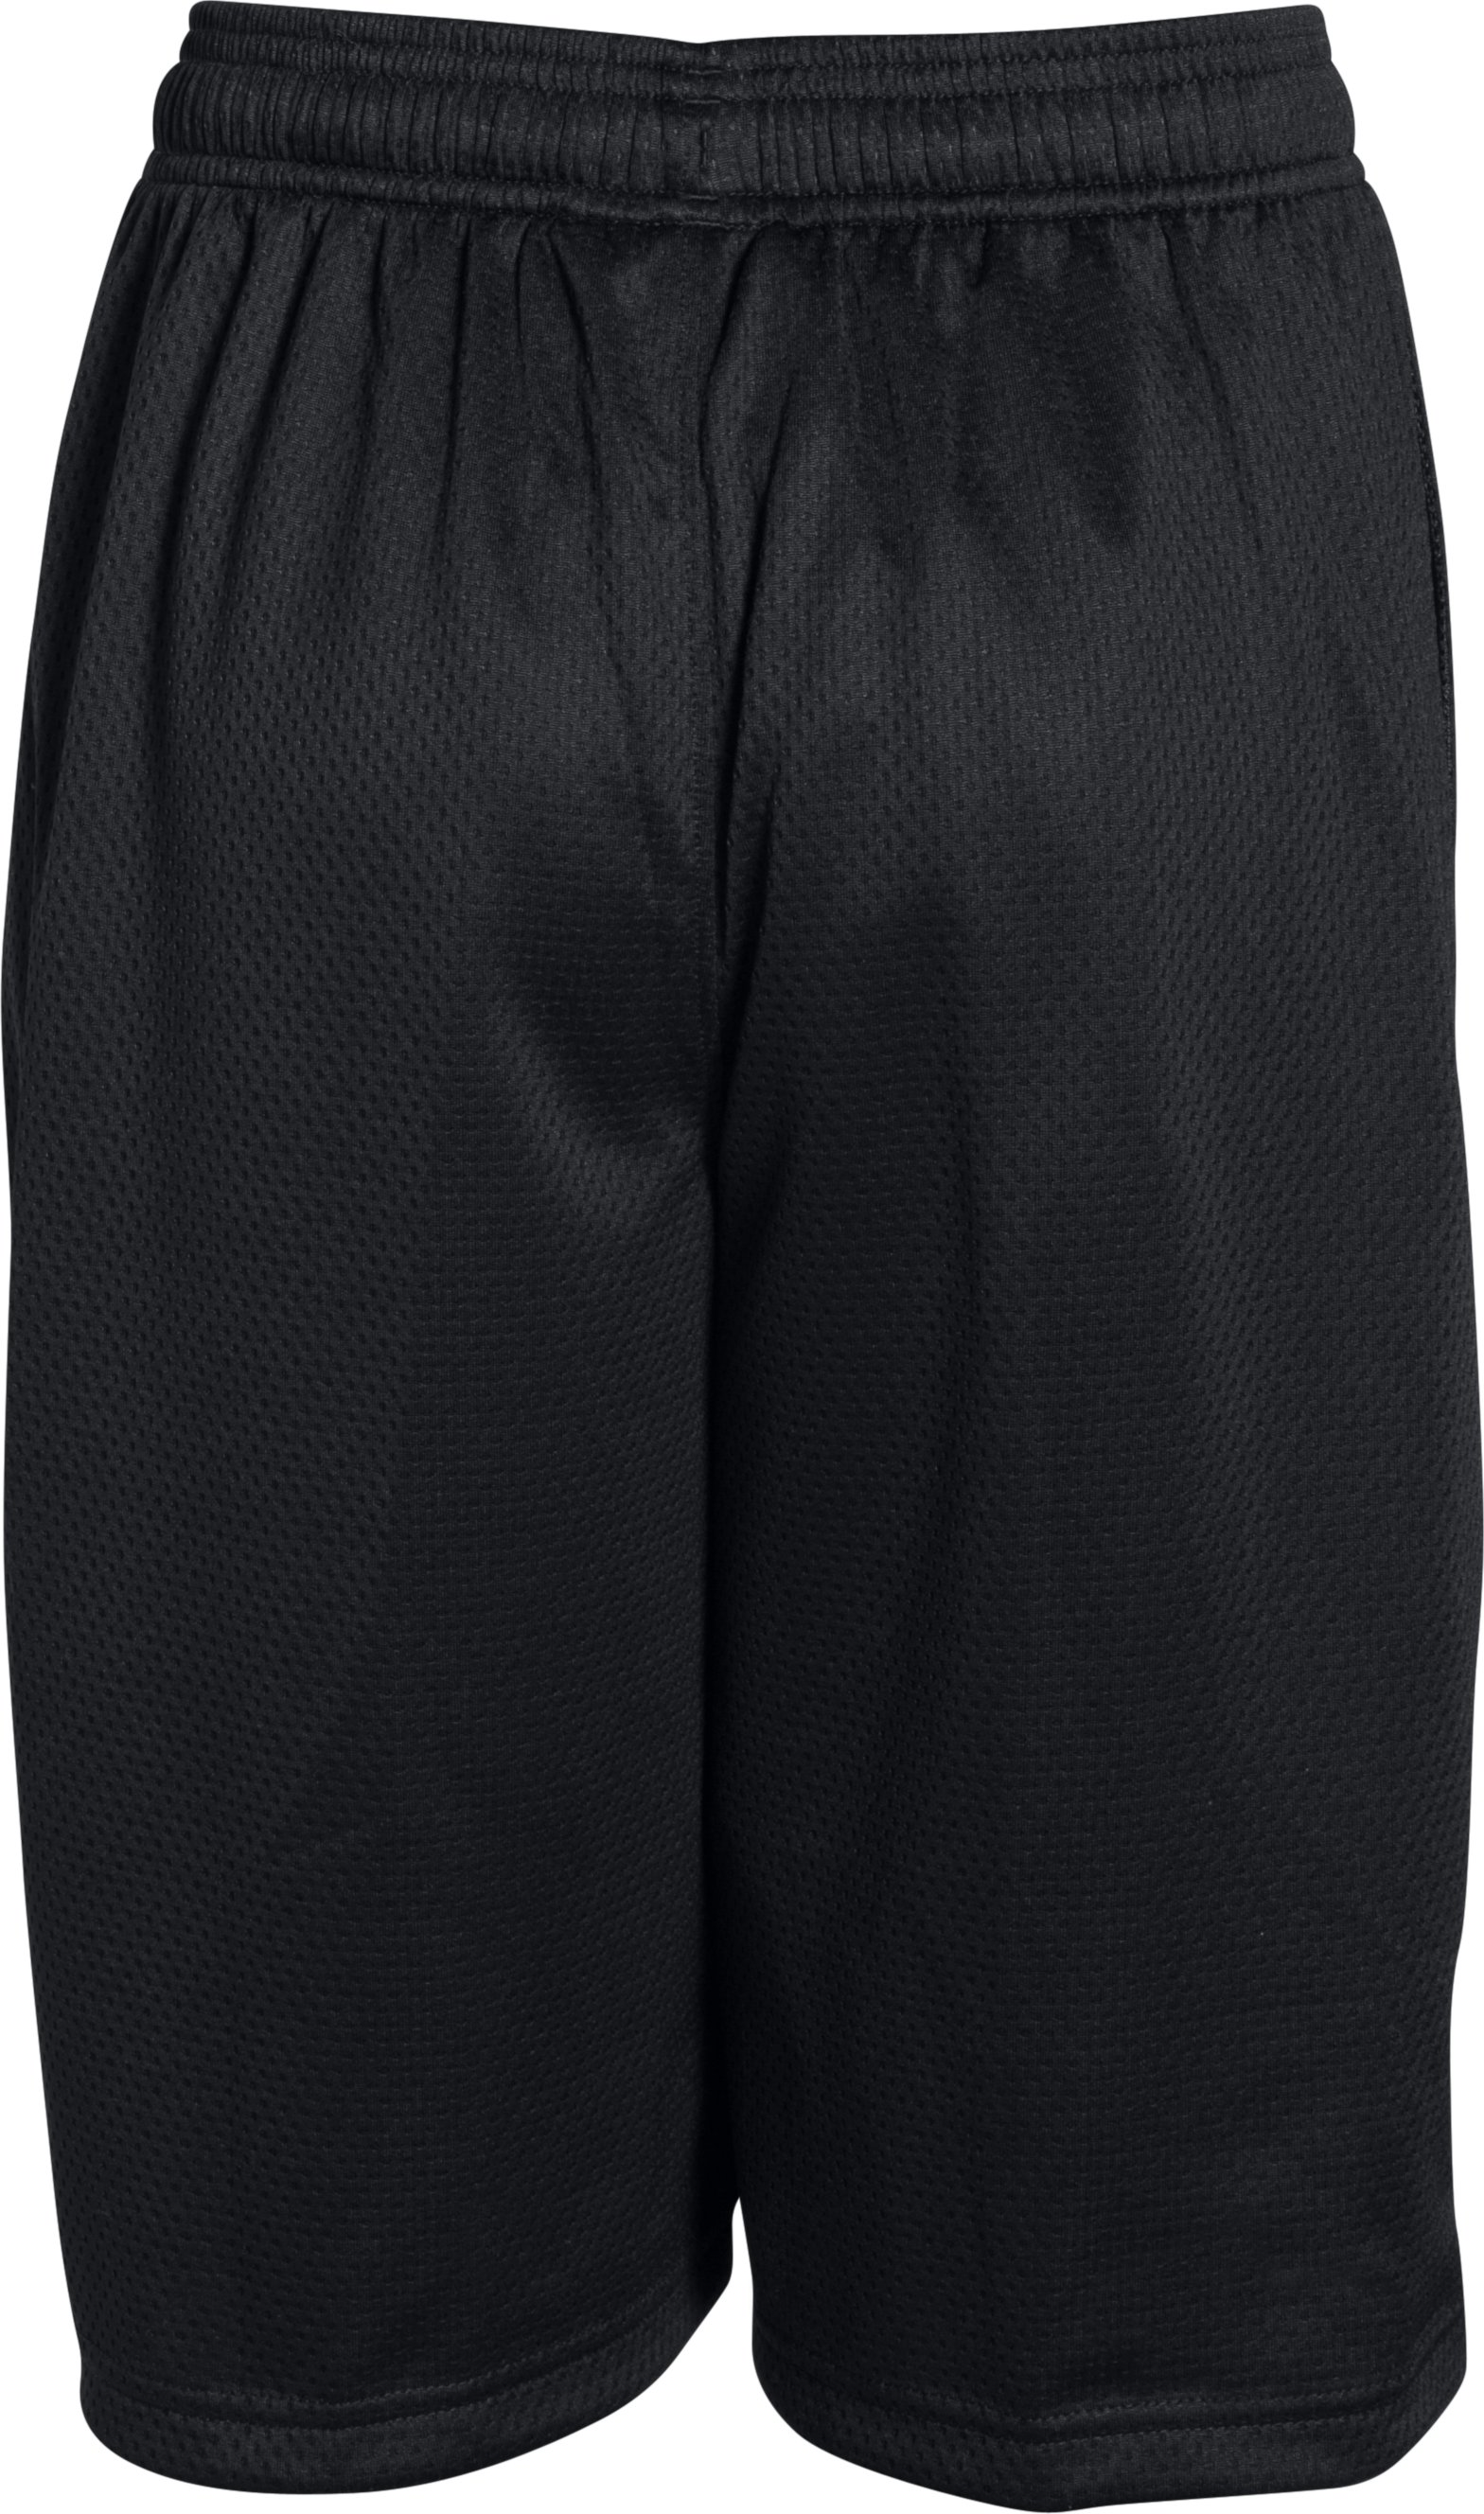 Boys' SC30 Essentials Basketball Shorts, Black , undefined